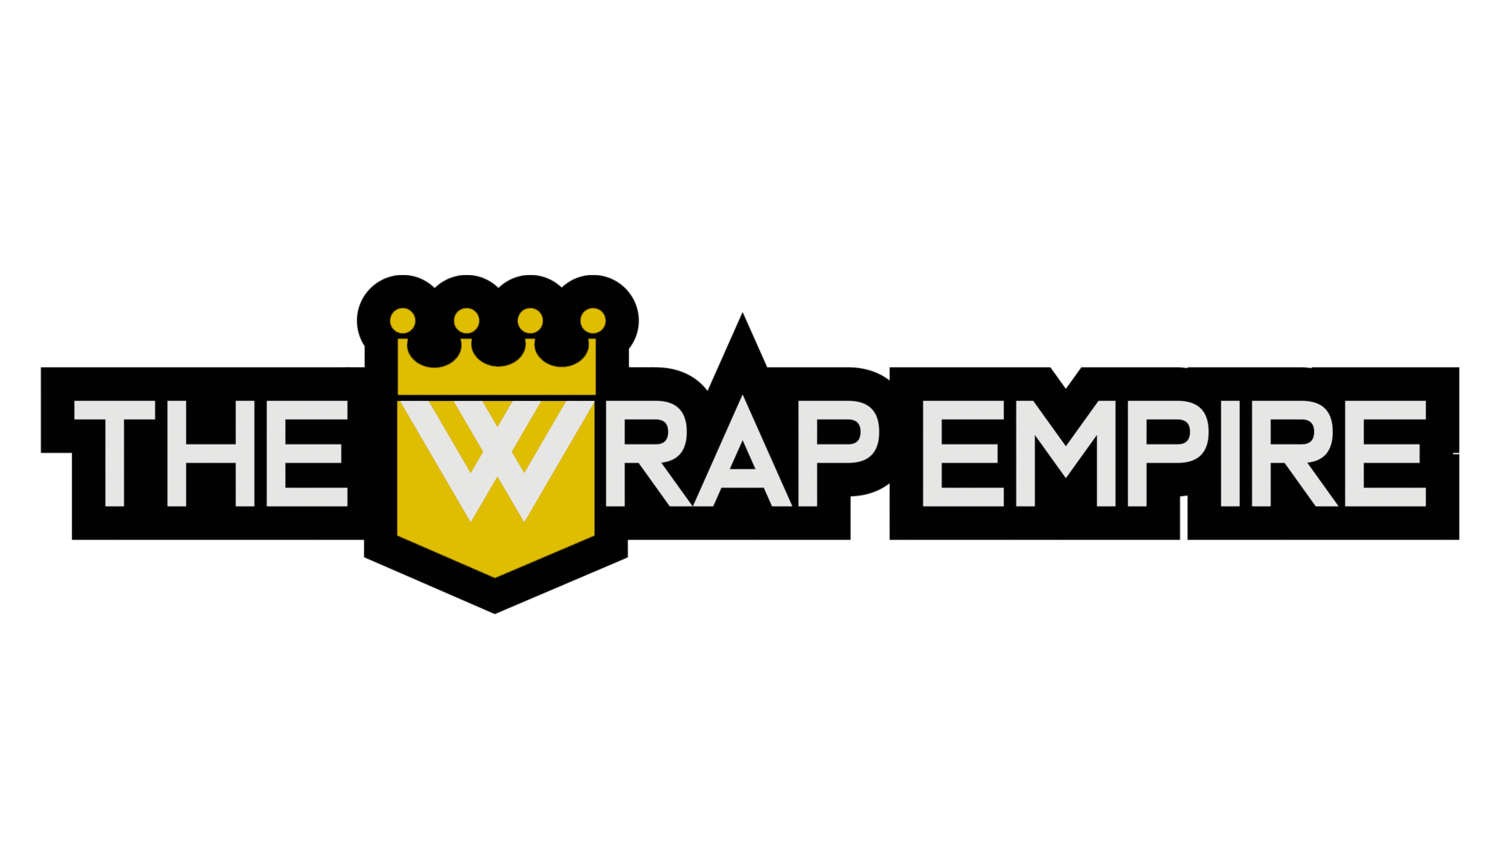 Vehicle Wraps in Houston | Car wraps | Commercial Wrap | Wrap Empire